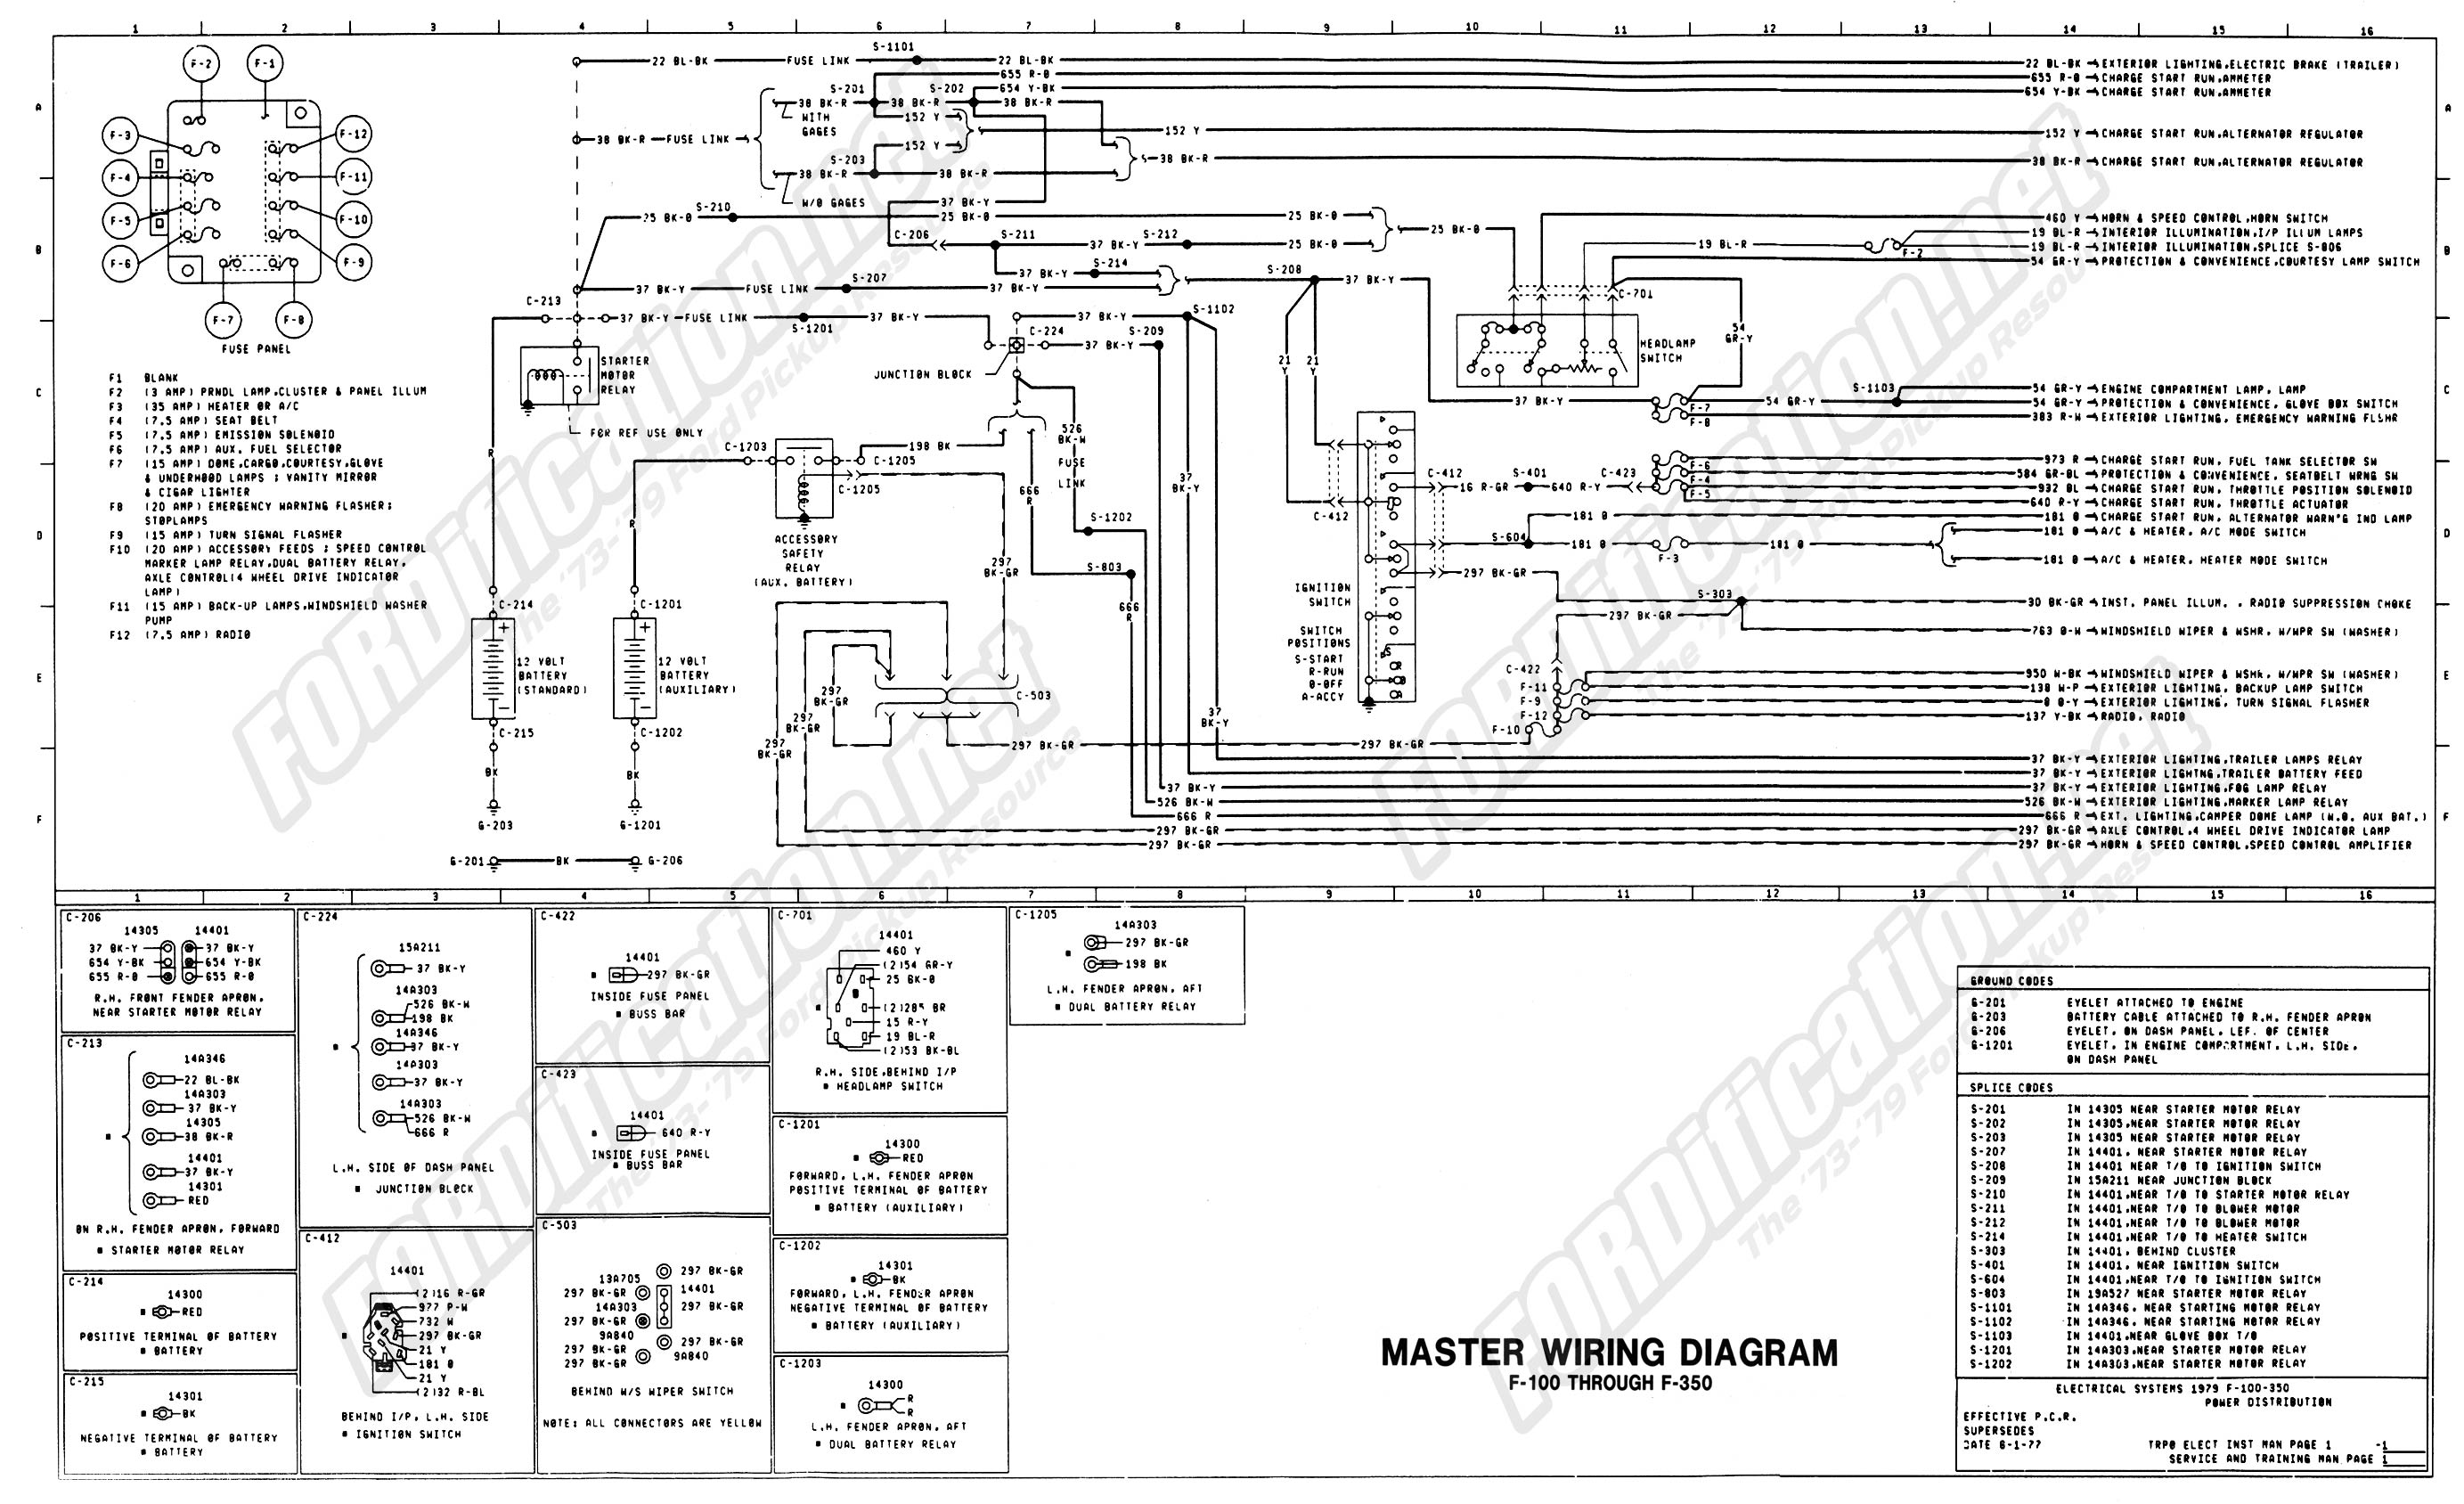 1979 f350 wiring diagram 1979 gmc wiring diagram